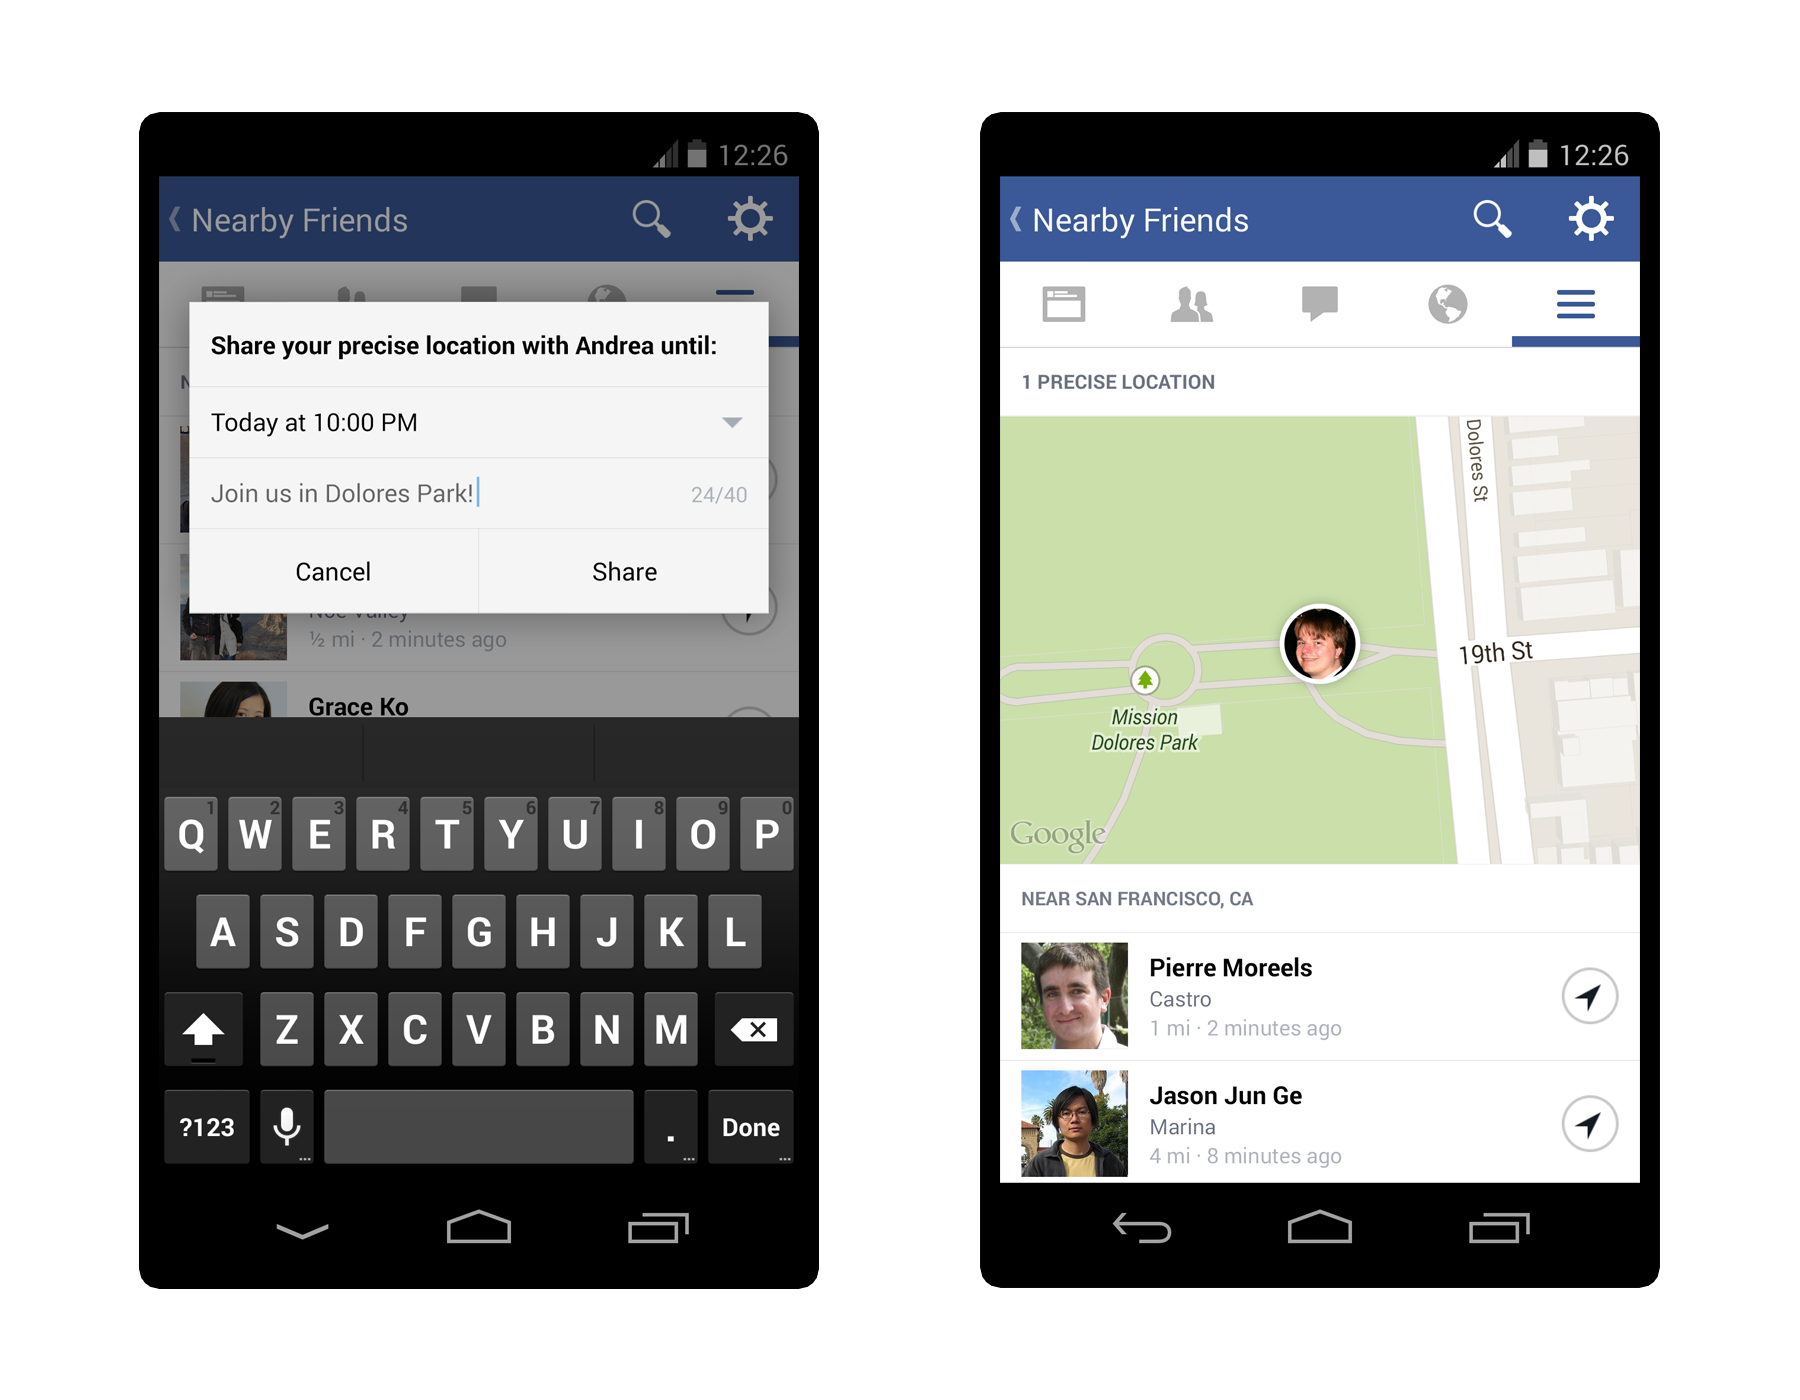 nearby friends press 3 Facebook launches optional Nearby Friends feature for Android and iOS